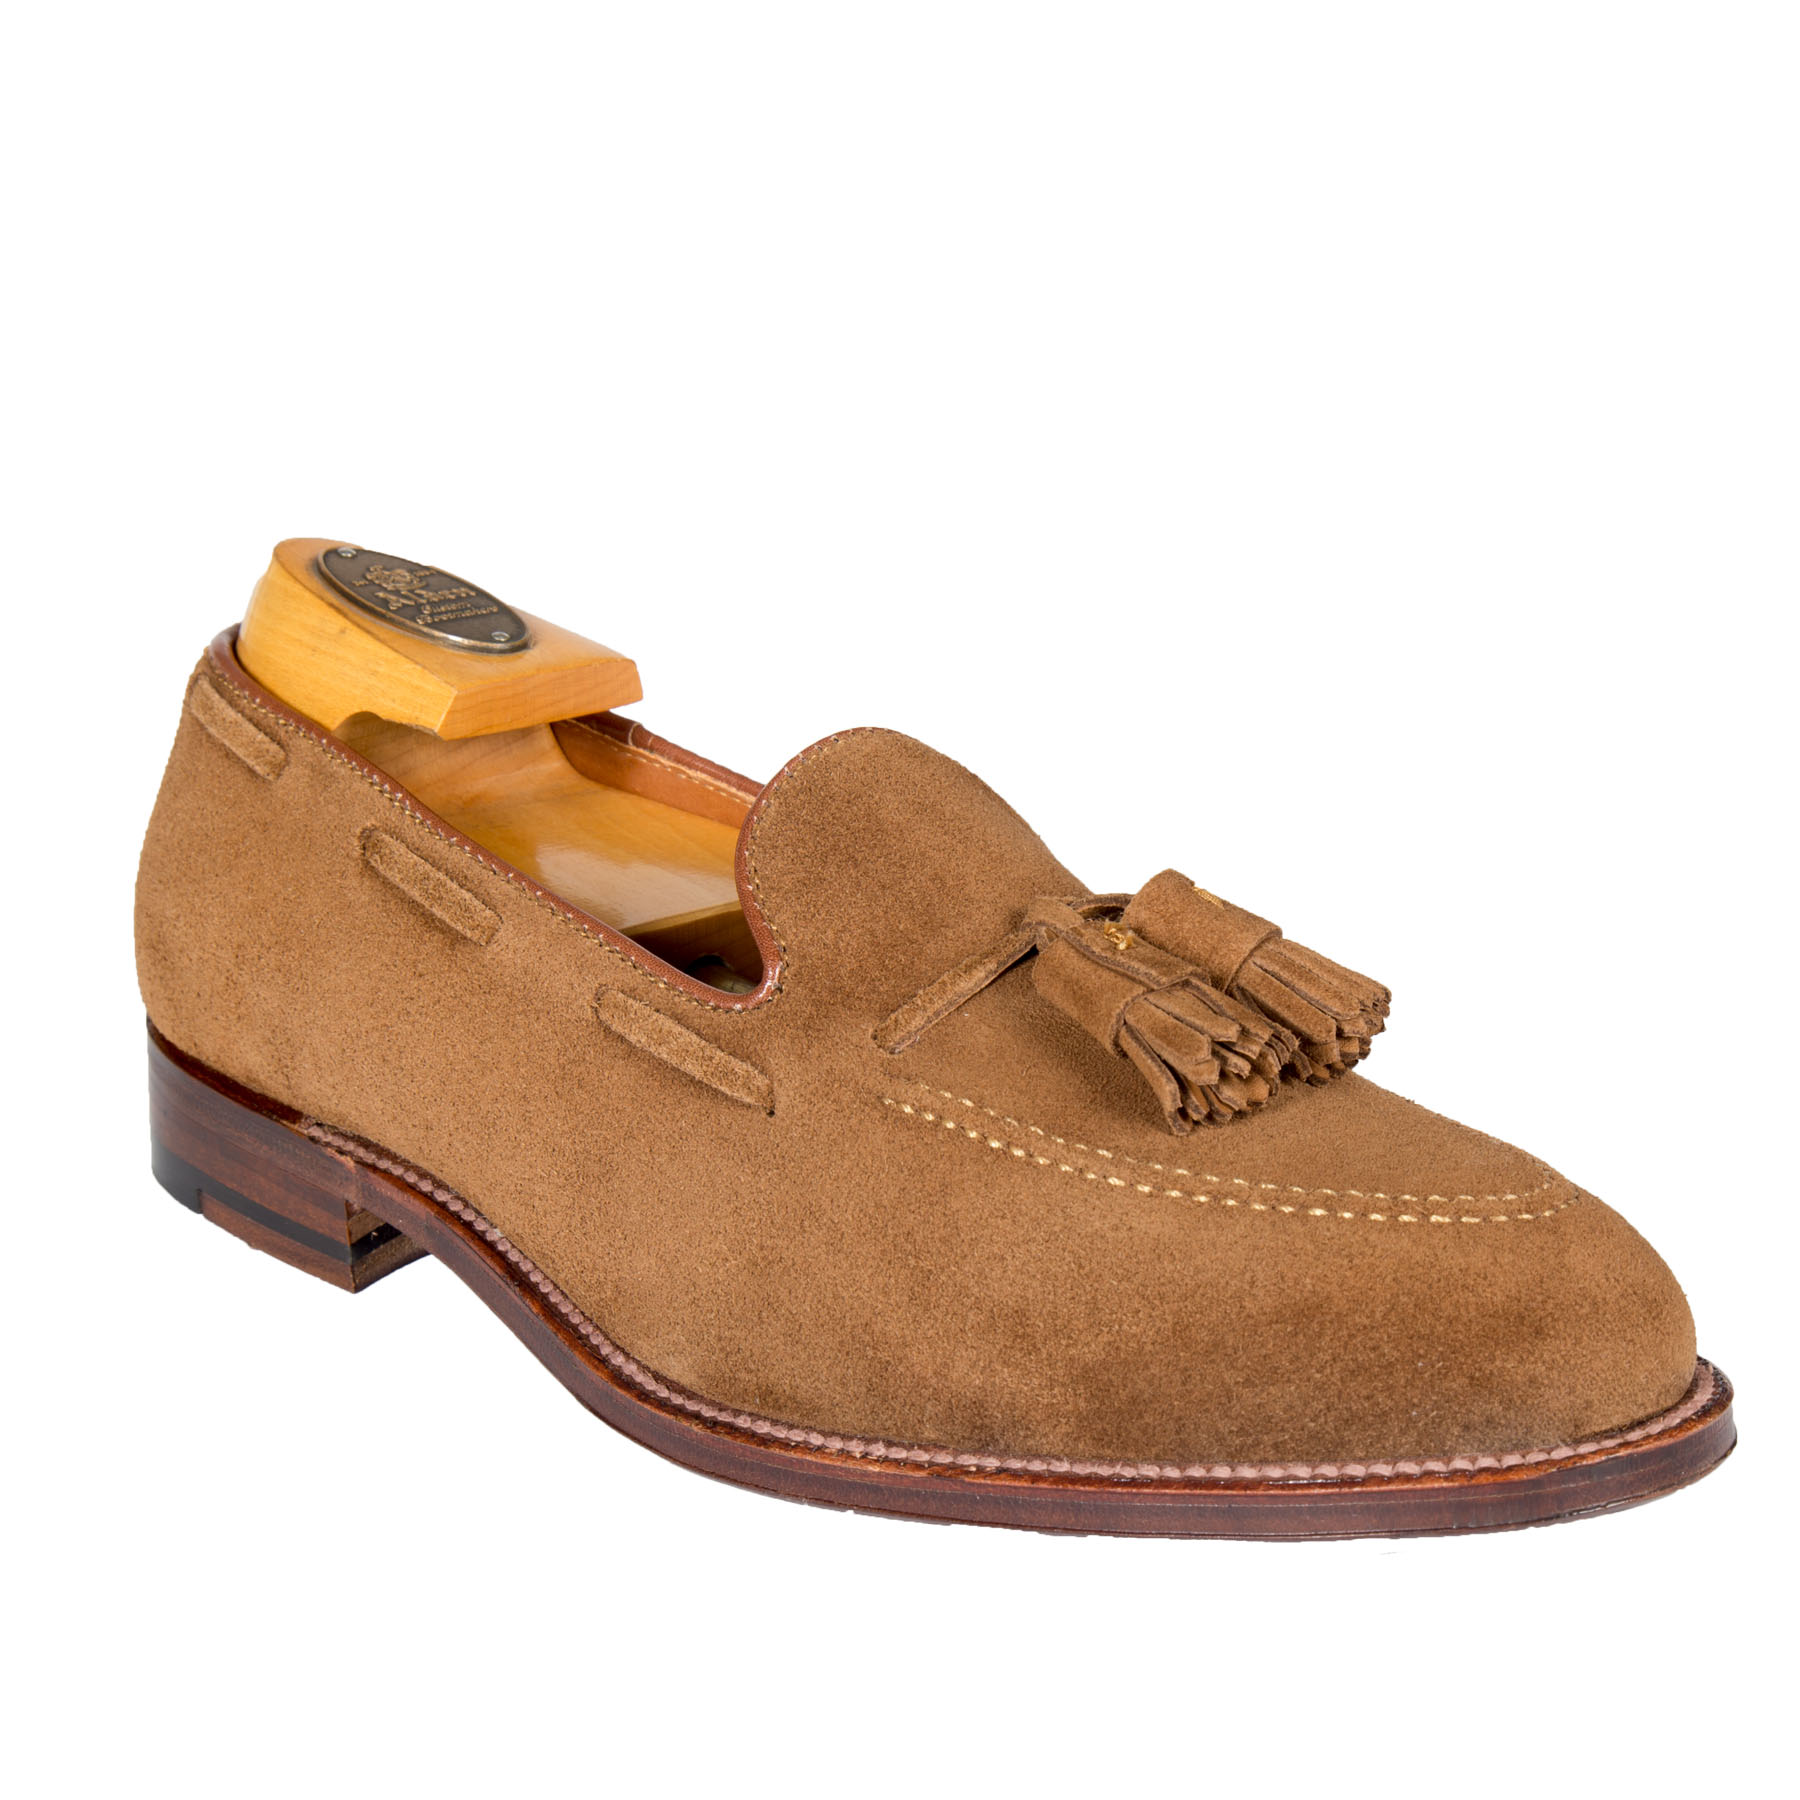 3b02db07b45 Tassel LoaferSnuff Suede3403 – Alden Shoes Madison Avenue New York